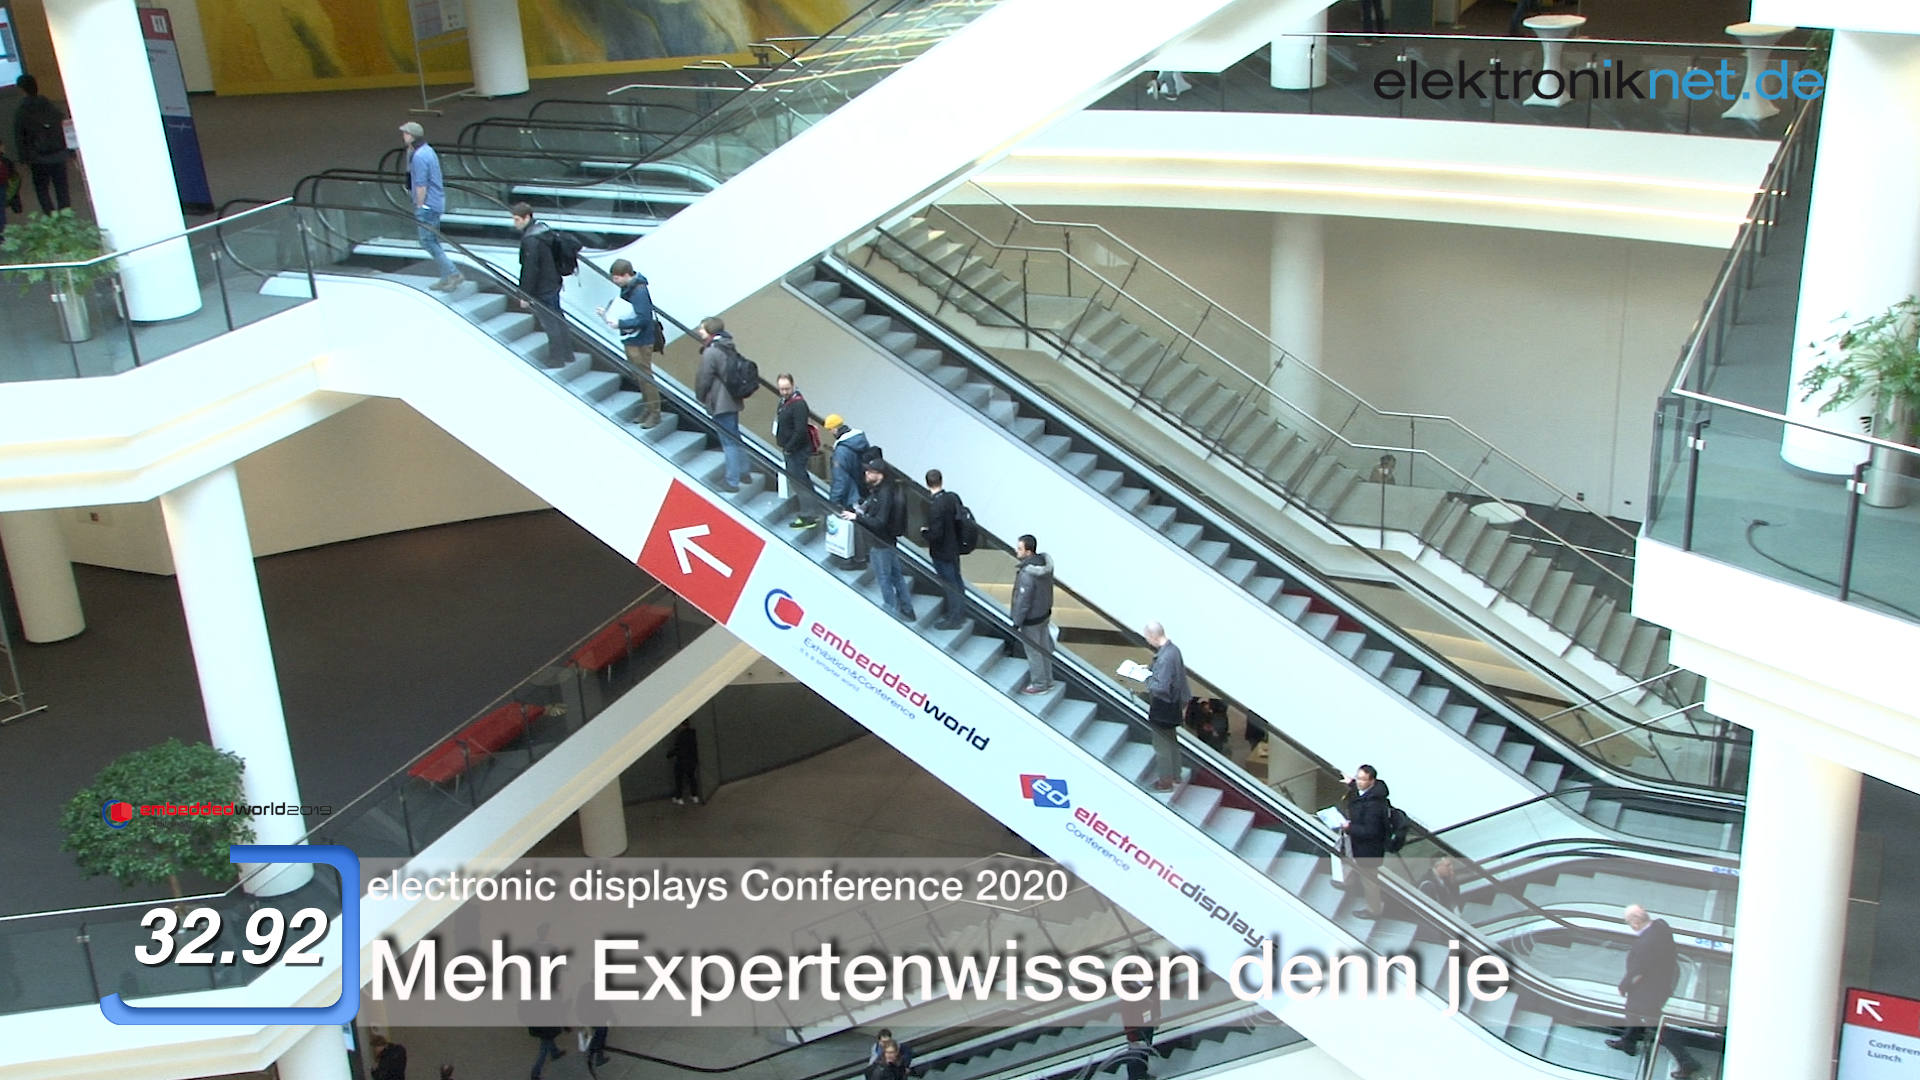 embedded world 2020 in 99 Sekunden - Tag 2